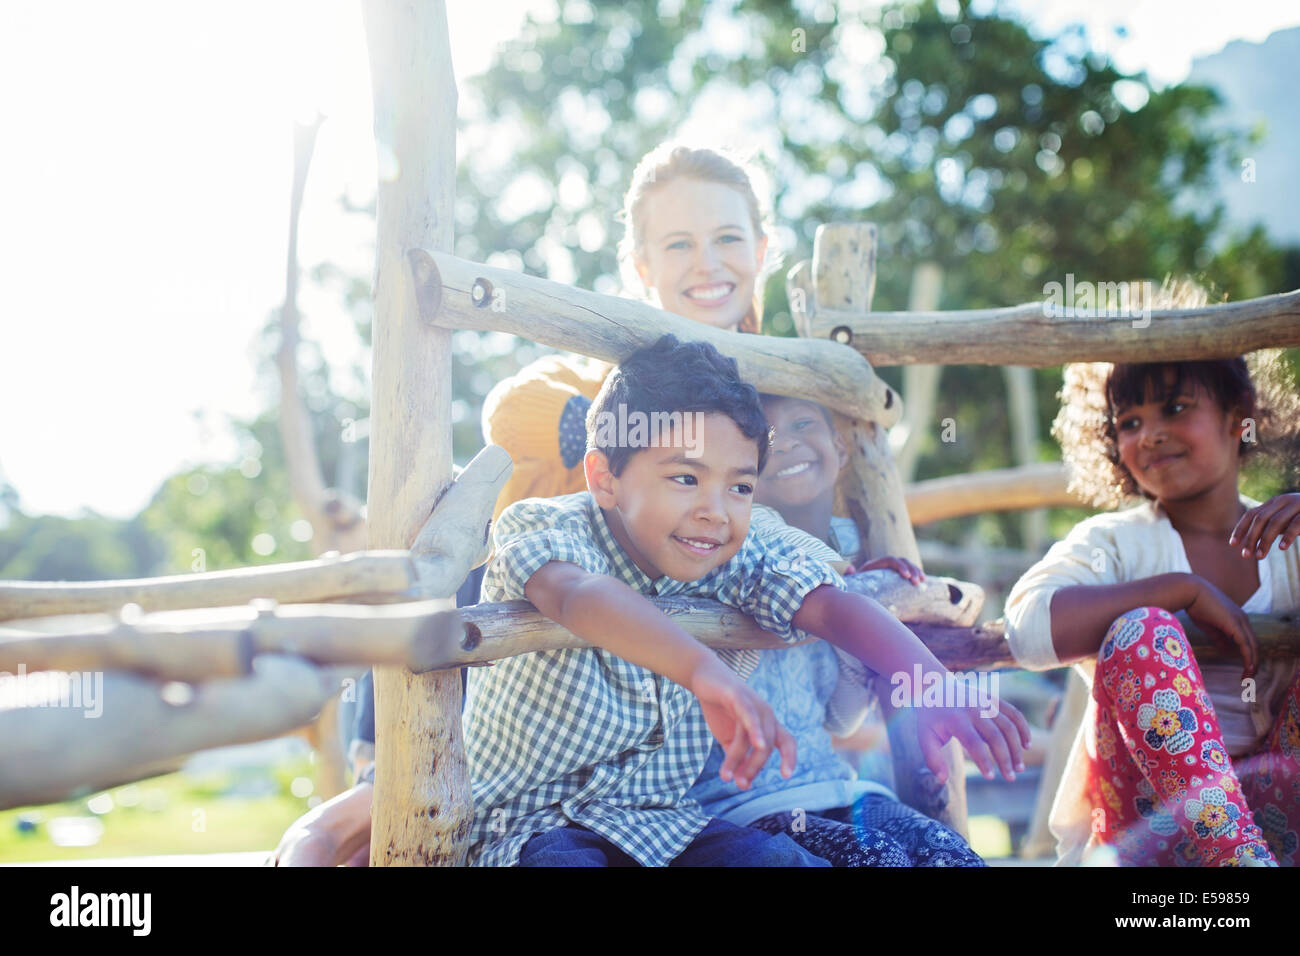 Teacher and students playing on play structure Stock Photo